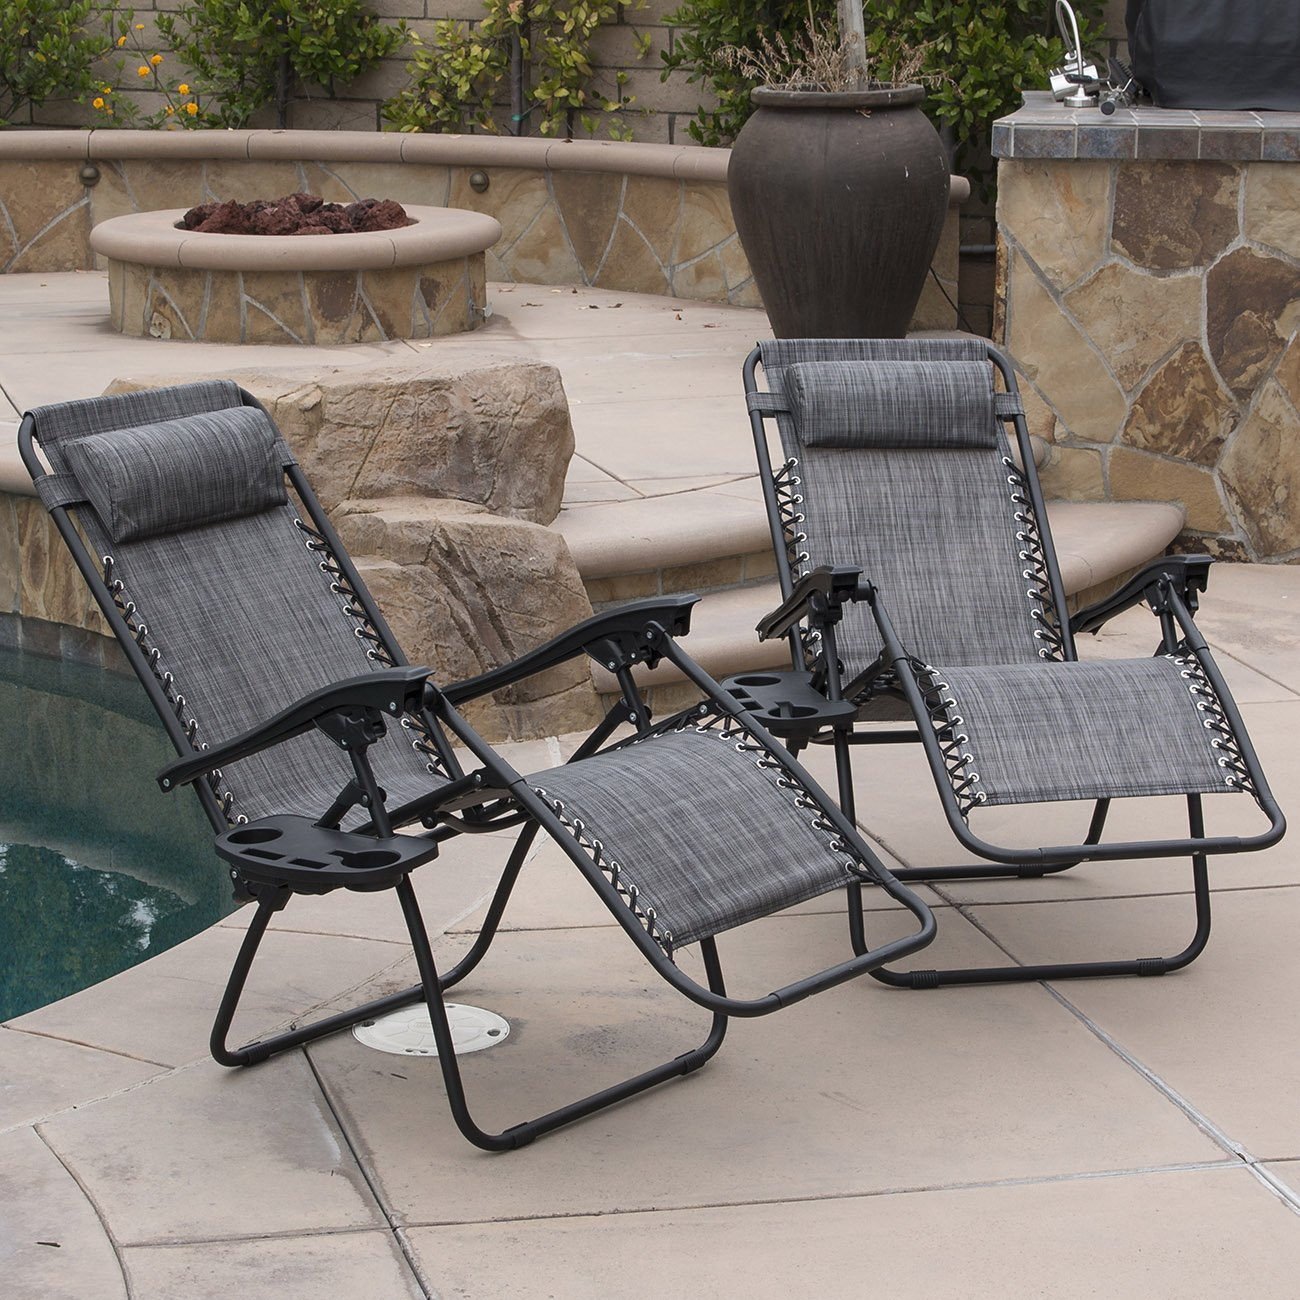 Superieur Amazon.com : Belleze Premium Patio Chairs Zero Gravity Folding Recliner And  Drink Tray, Set Of 2, Gray : Garden U0026 Outdoor